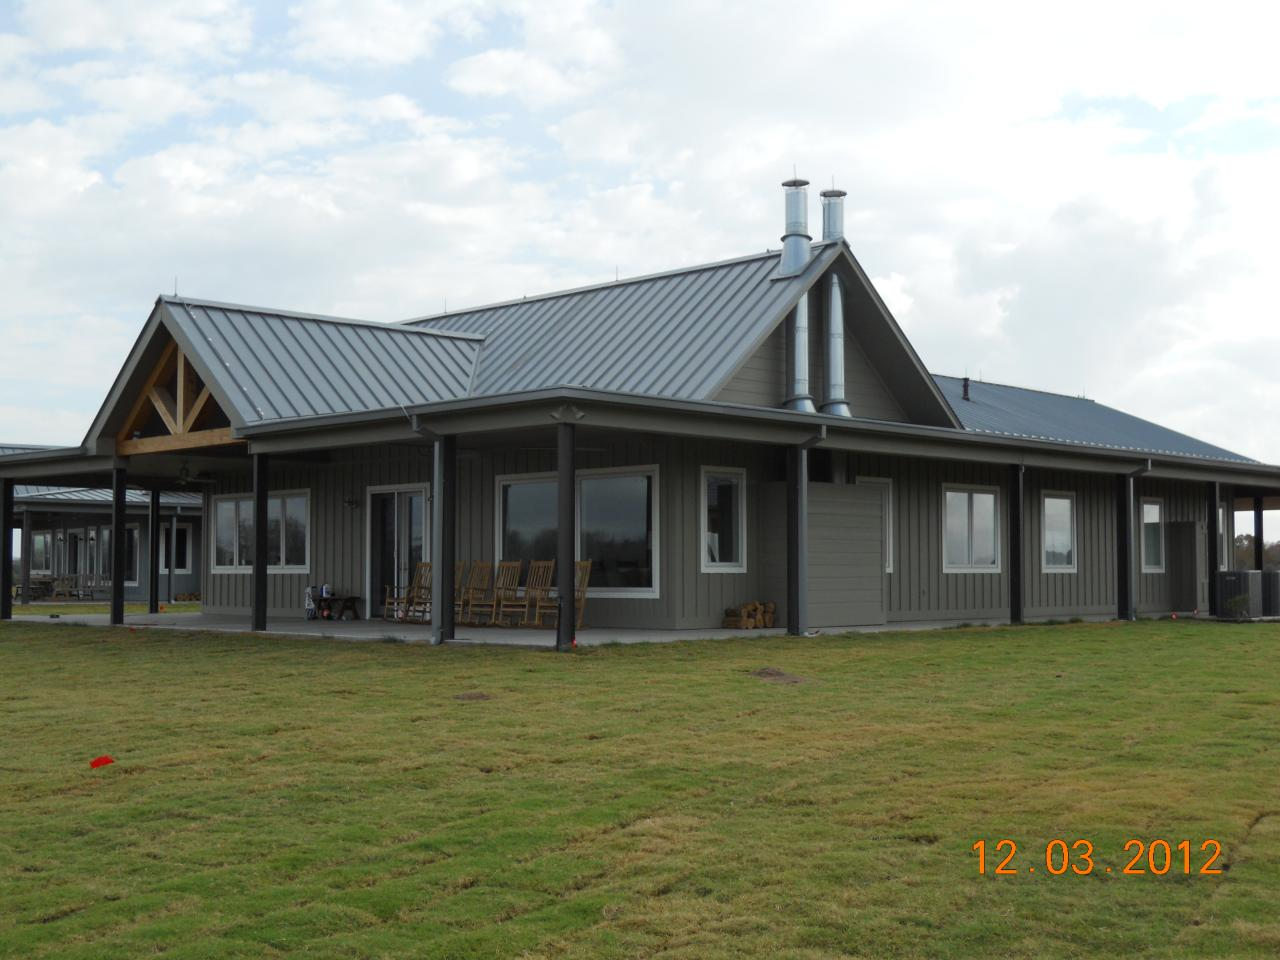 Texas Steel Home Plans further Barn House Plans also Very Simple 30 X 50 Metal Pole Barn Home In Oklahoma Hq Pictures likewise Steel Framing Kits Custom Homes further Horsebarn. on pole barns oklahoma